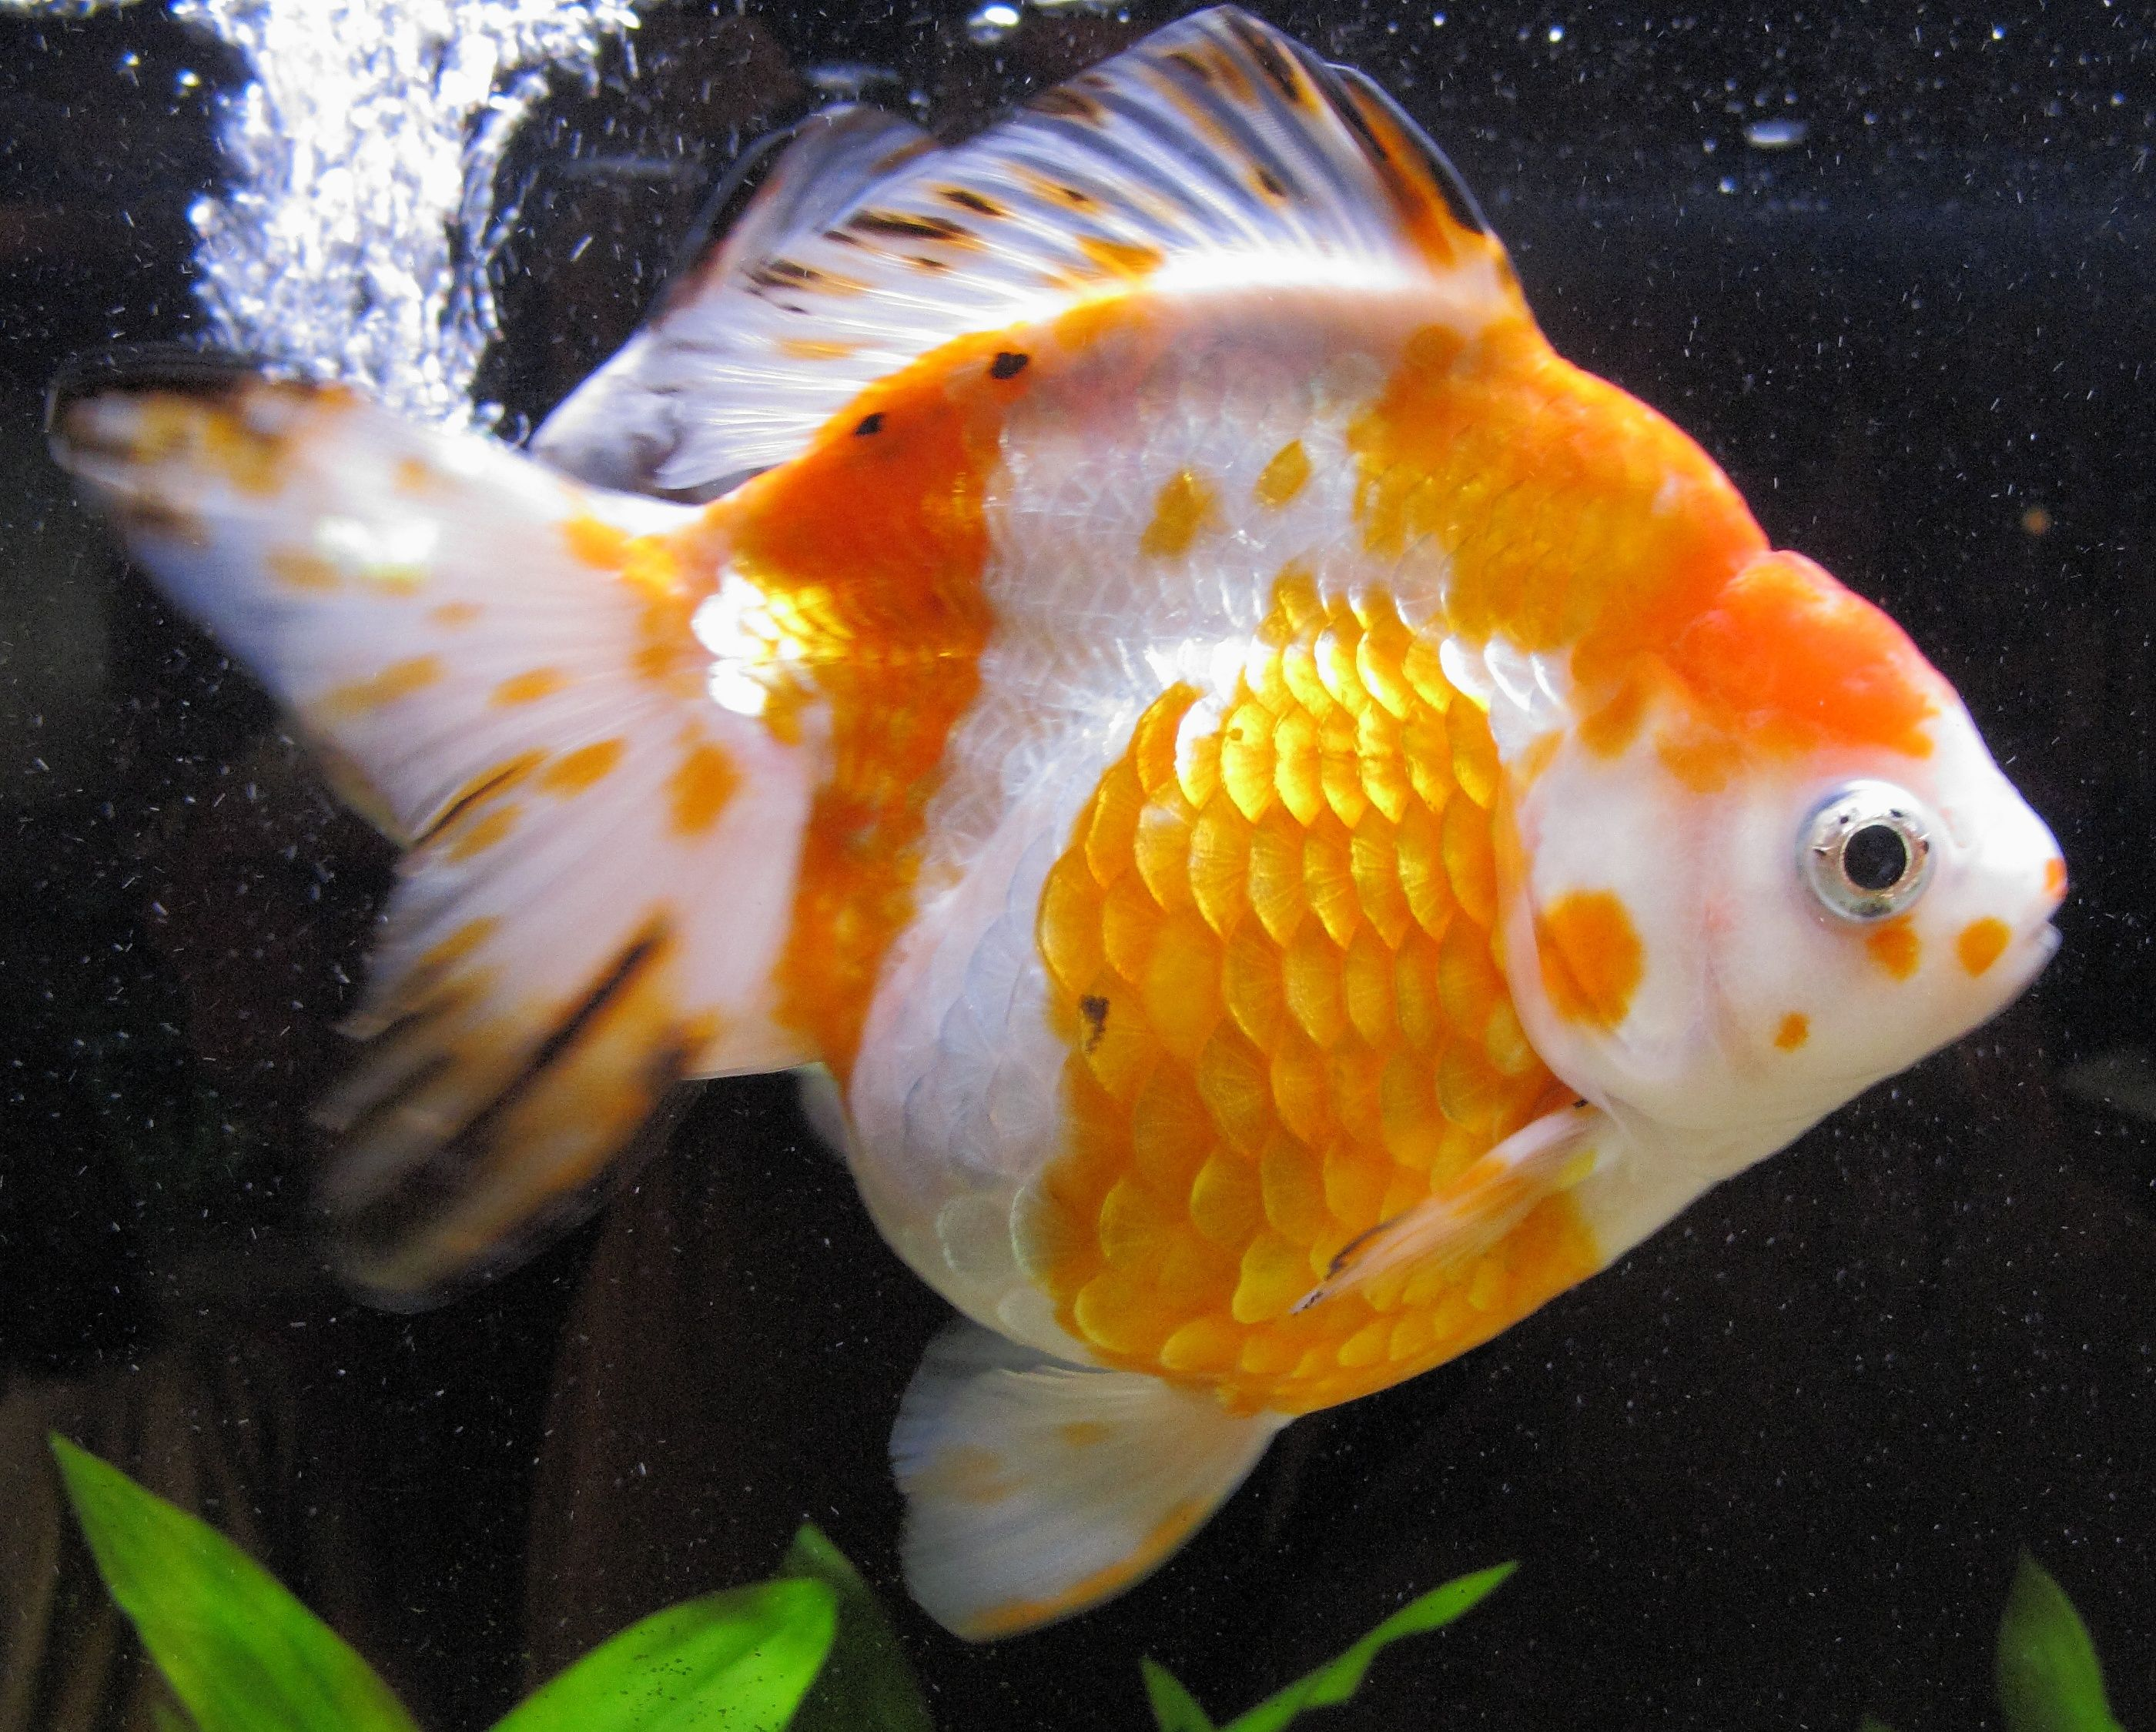 Orange And White Ryukin With Black Specks Ryukin Goldfish Pet Goldfish Goldfish